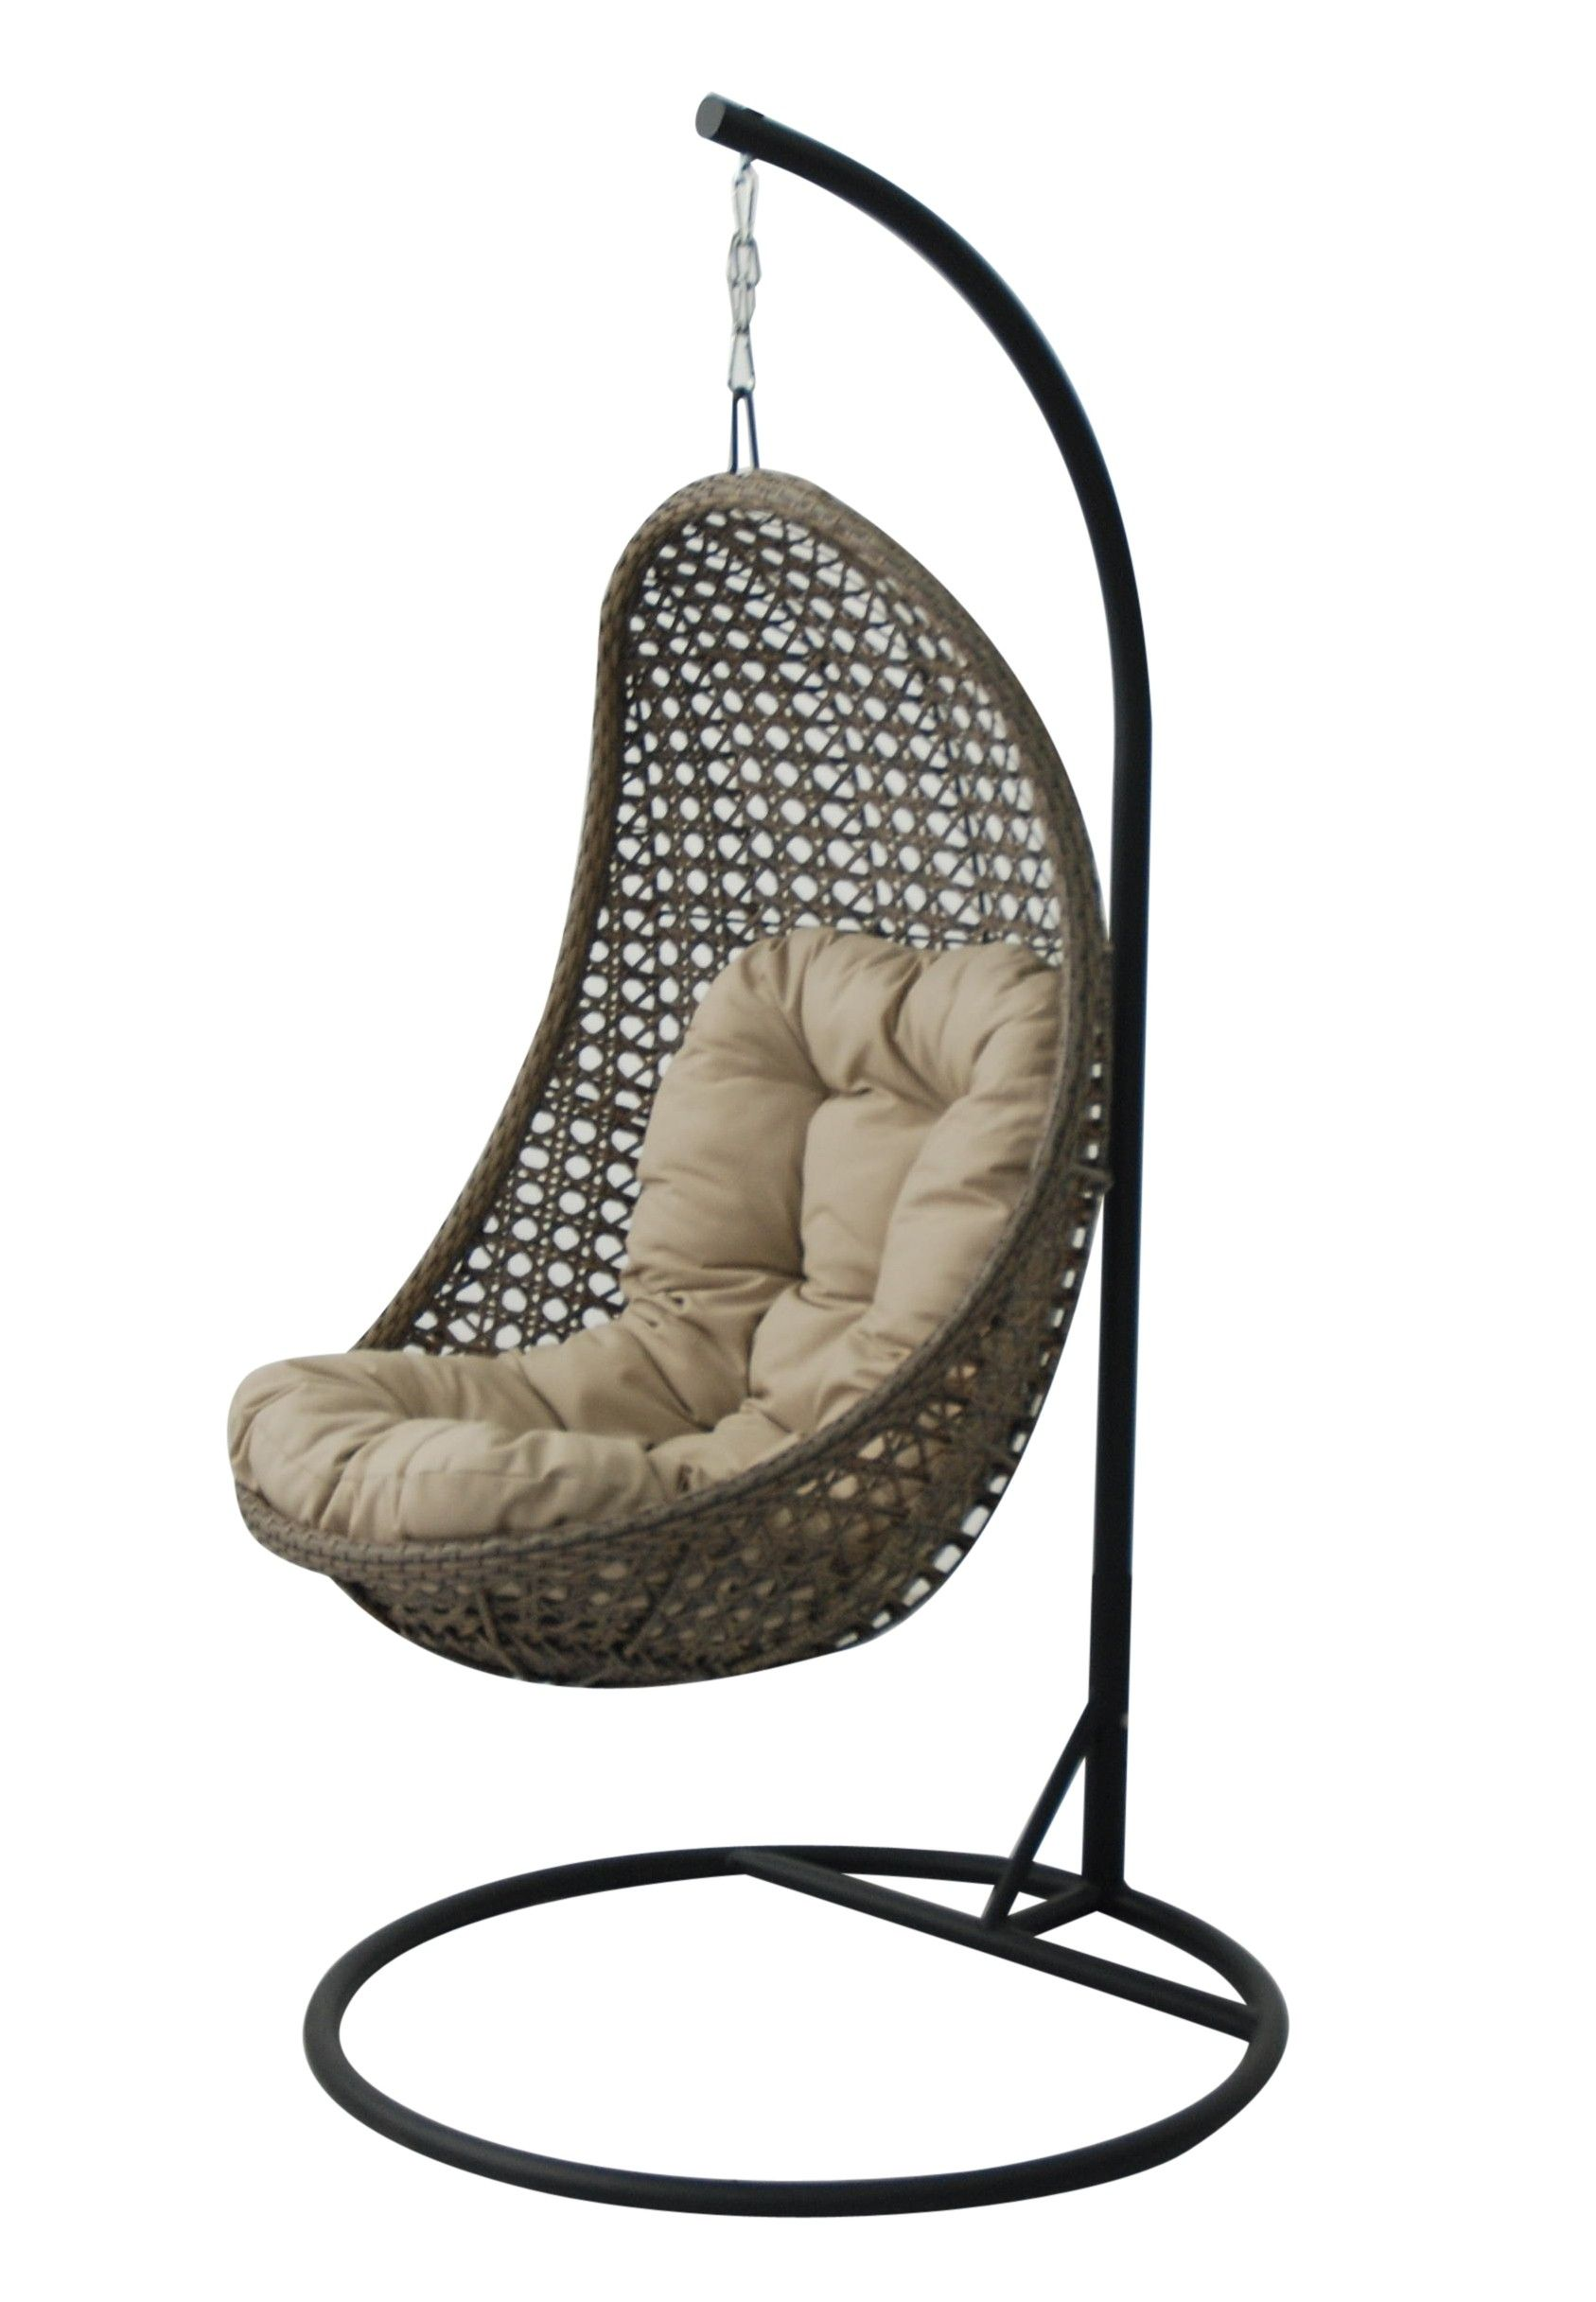 Jasmine Large Hanging Egg Chair Hanging egg chair, Chair